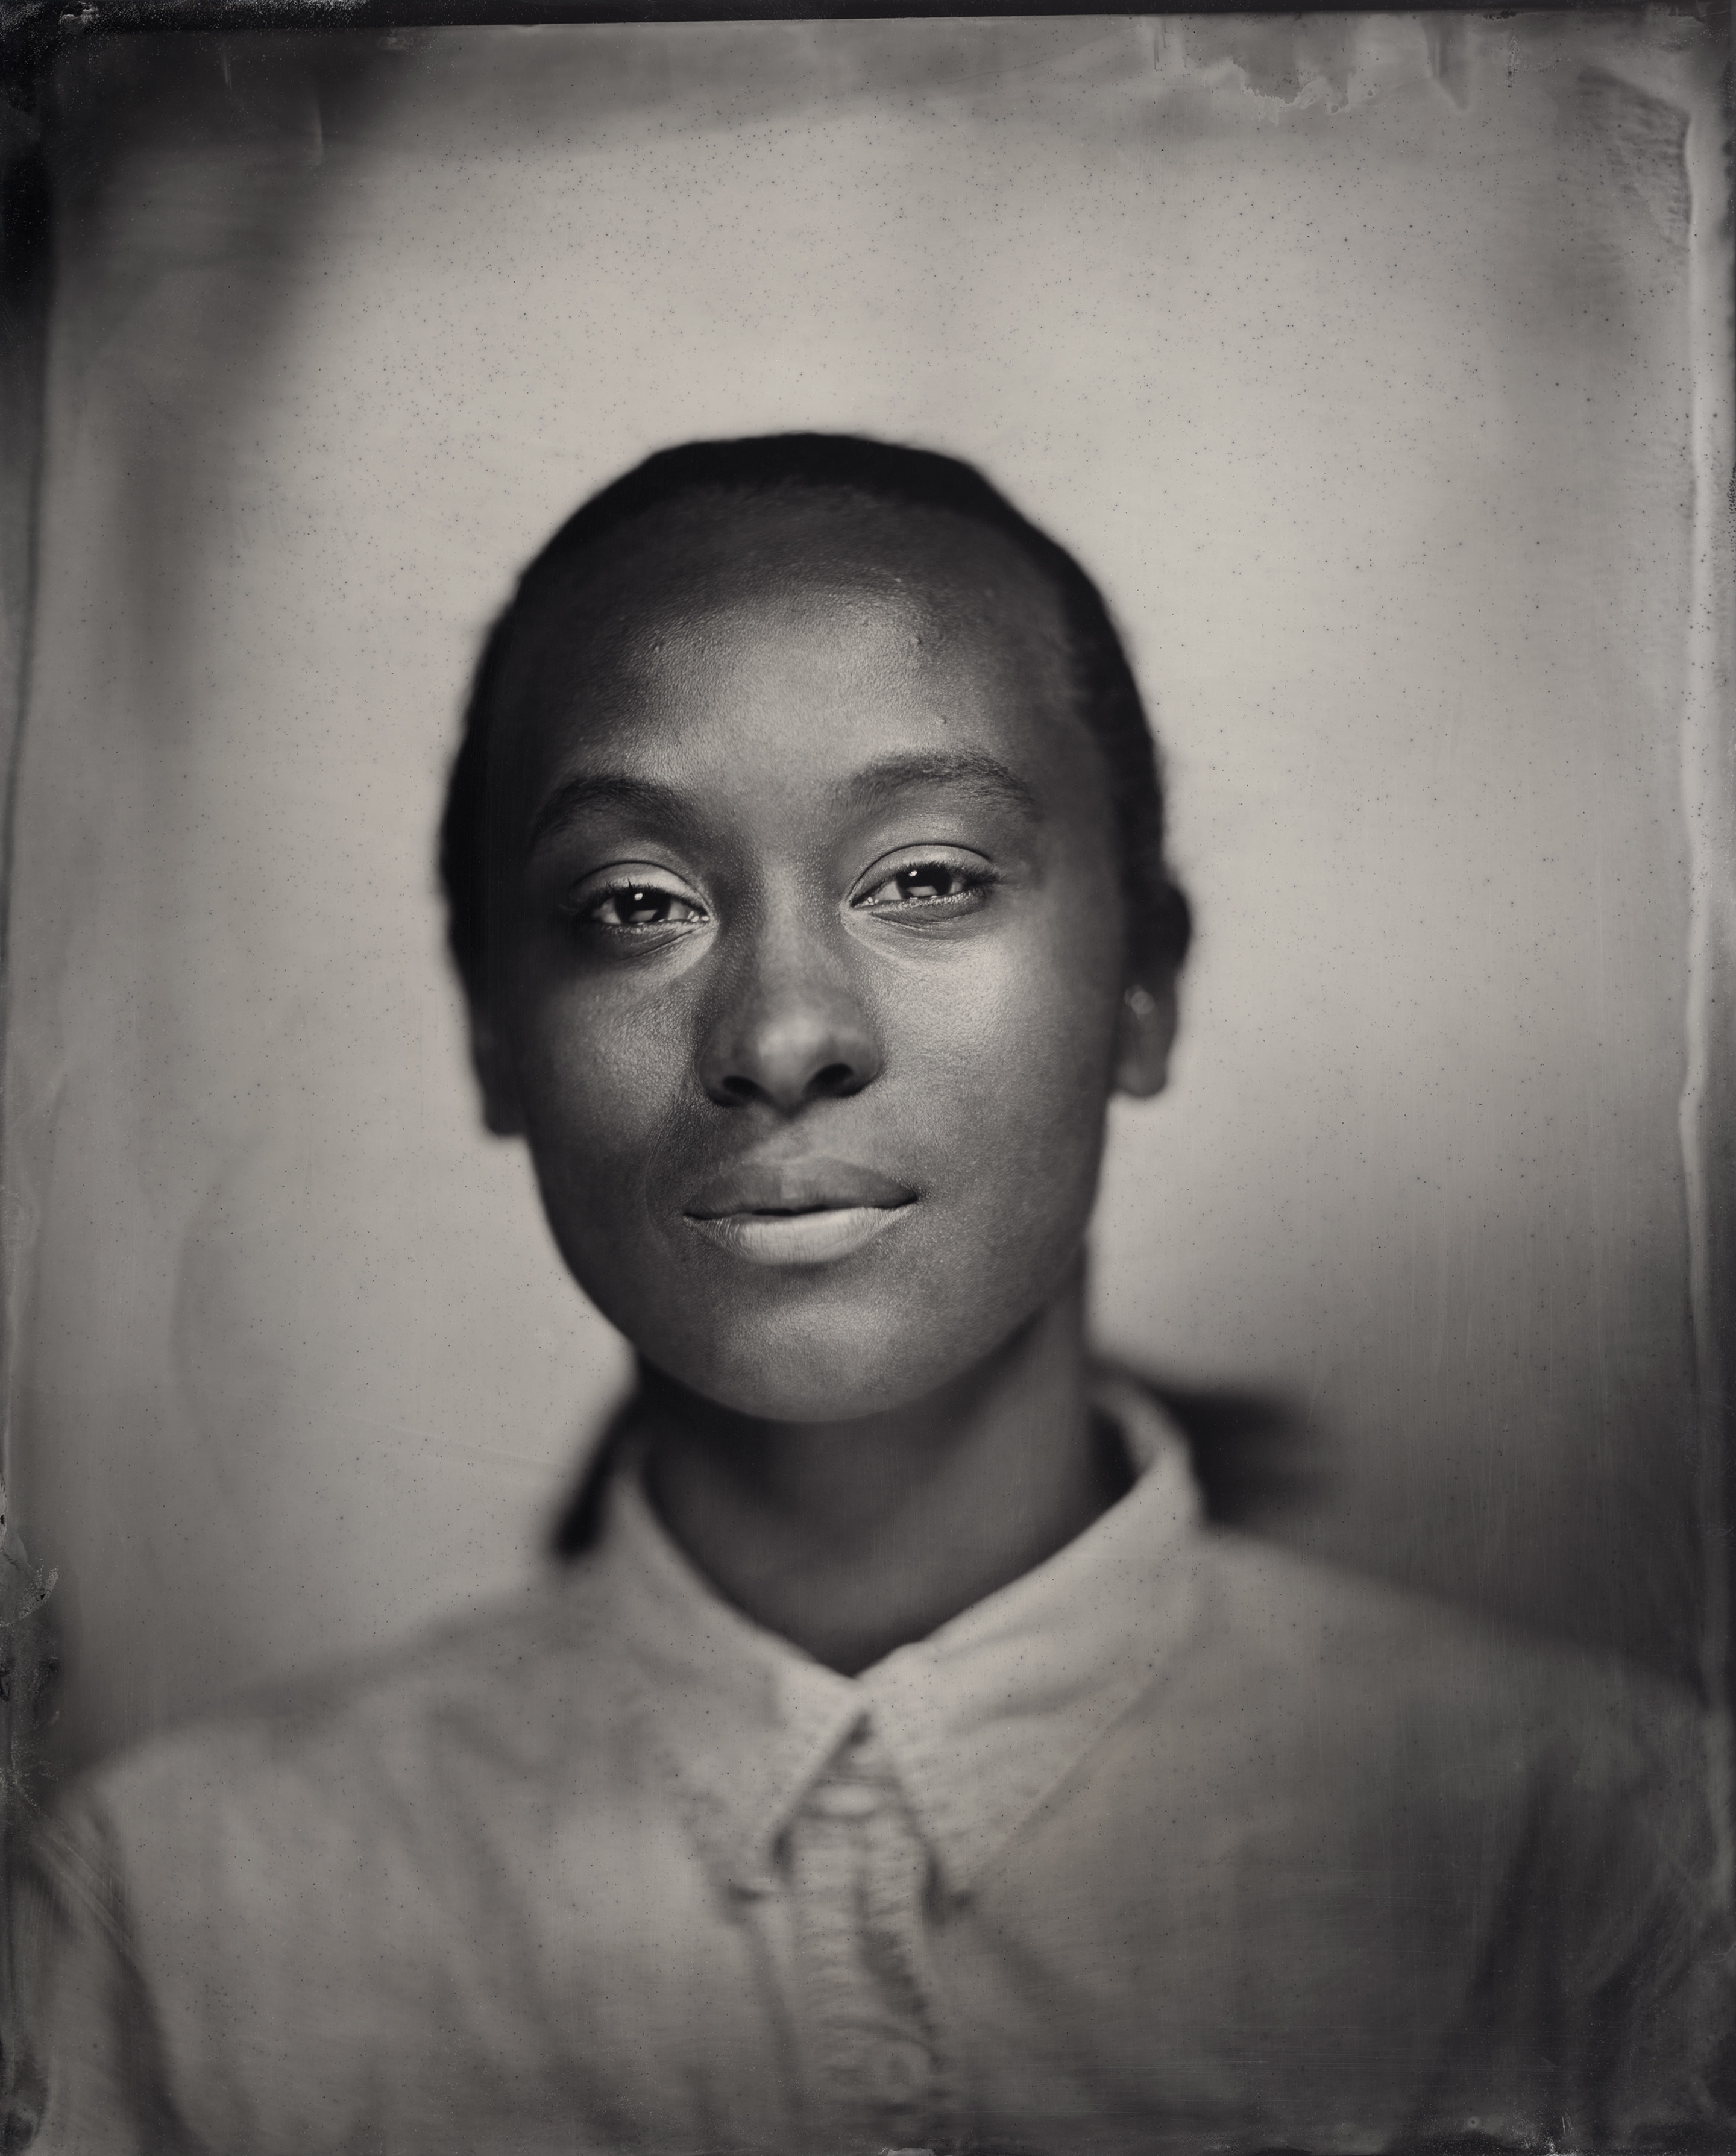 A tin type portrait of a young BIPOC woman in a collared shirt looking directly at the camera.